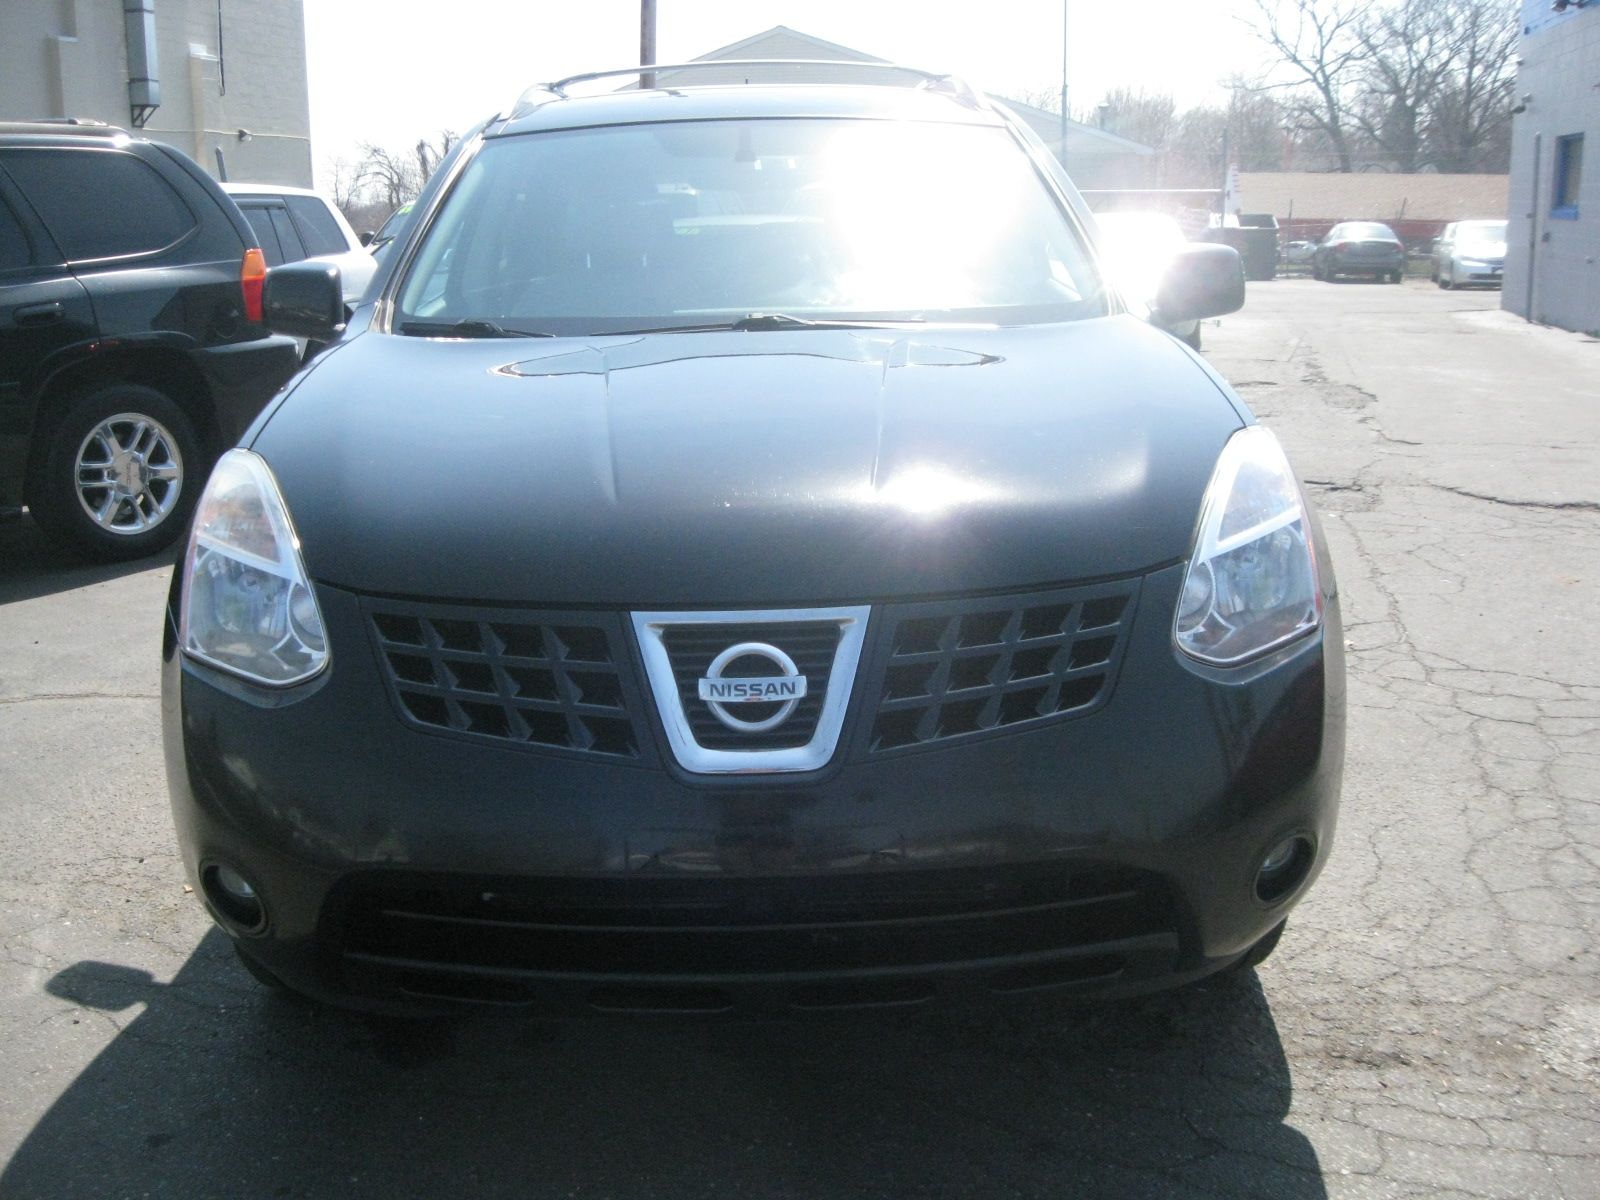 city altima revo s nissan wholesales ct apple waterbury auto in